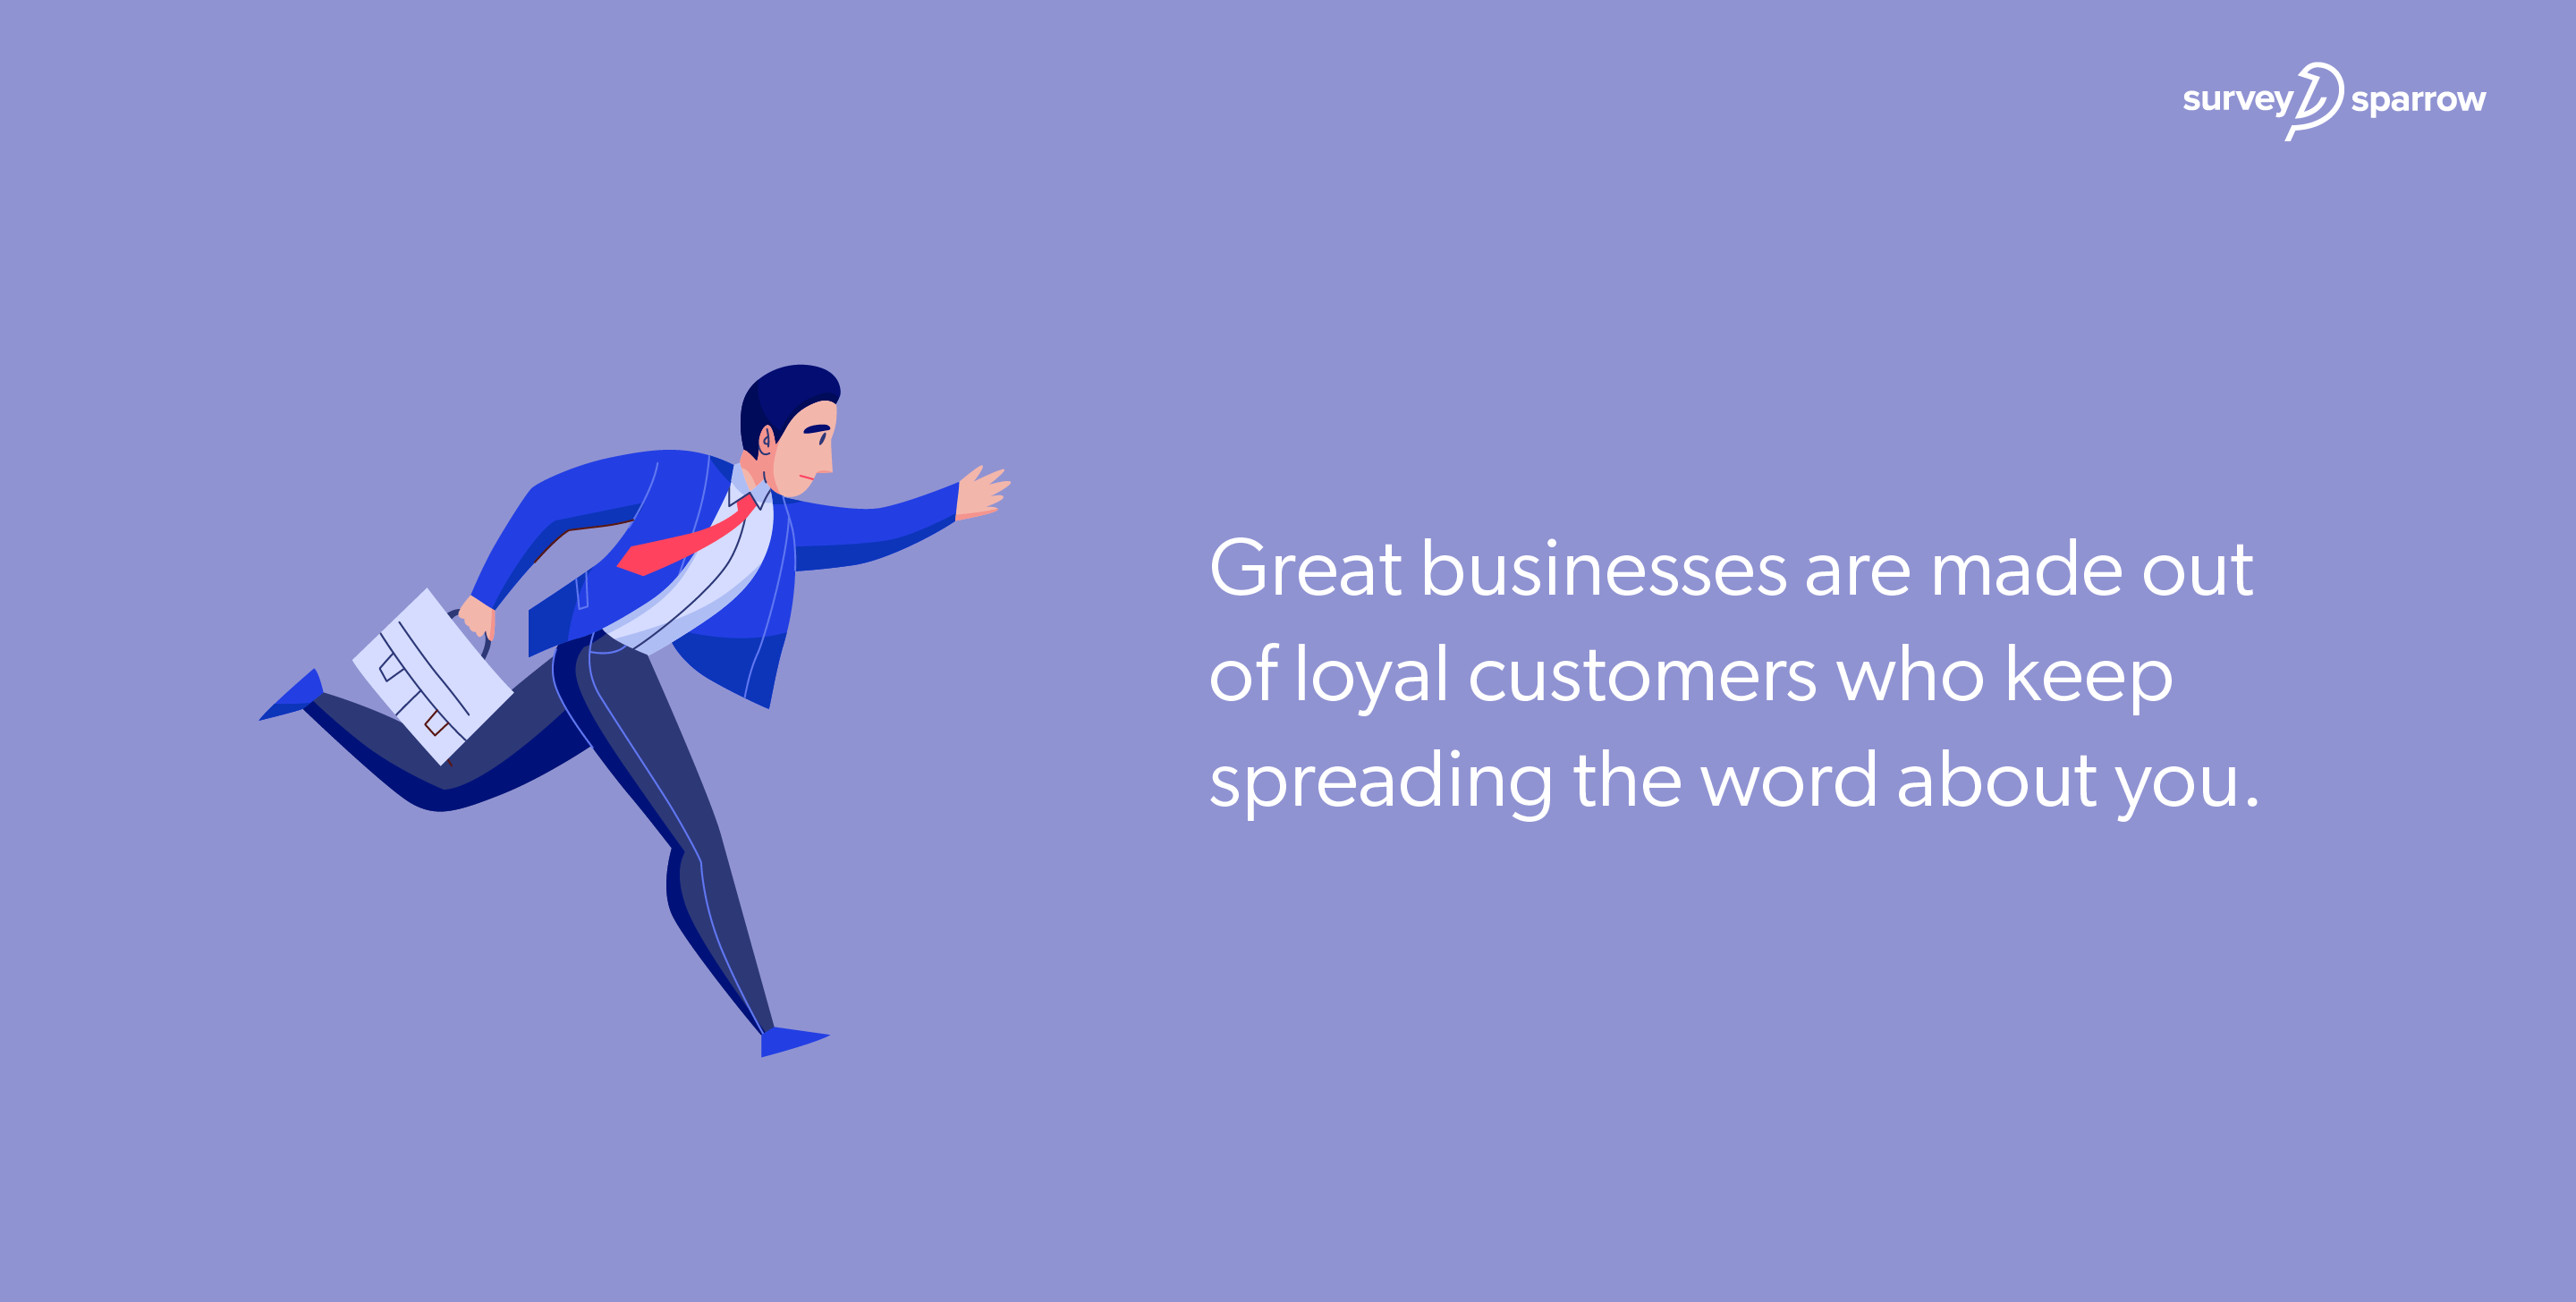 Great businesses are made out of loyal customers who keep spreading the word about you.